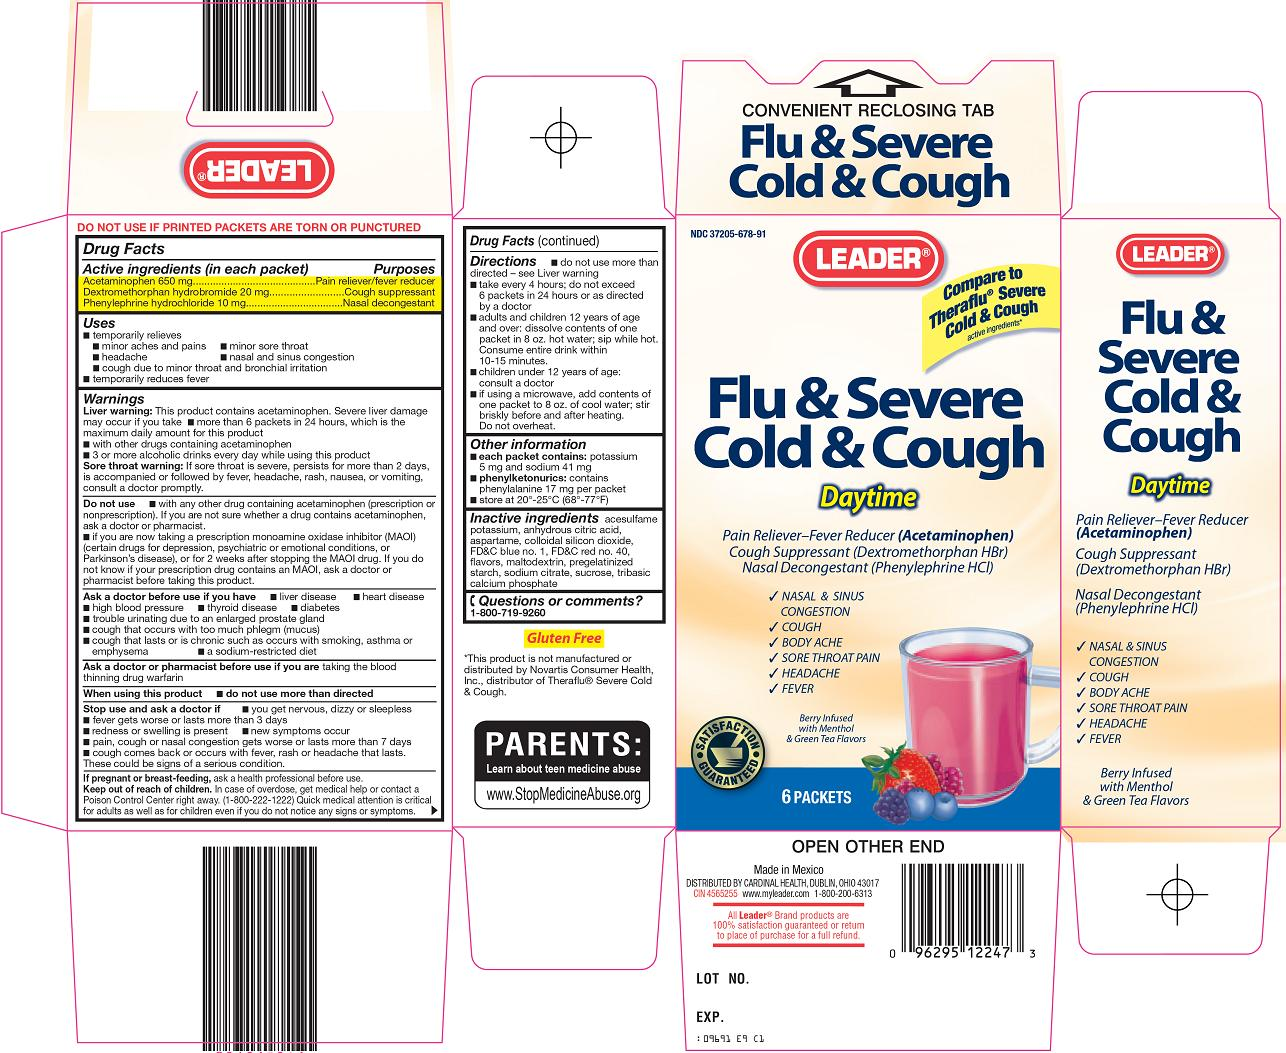 Flu & Severe Cold & Cough Carton